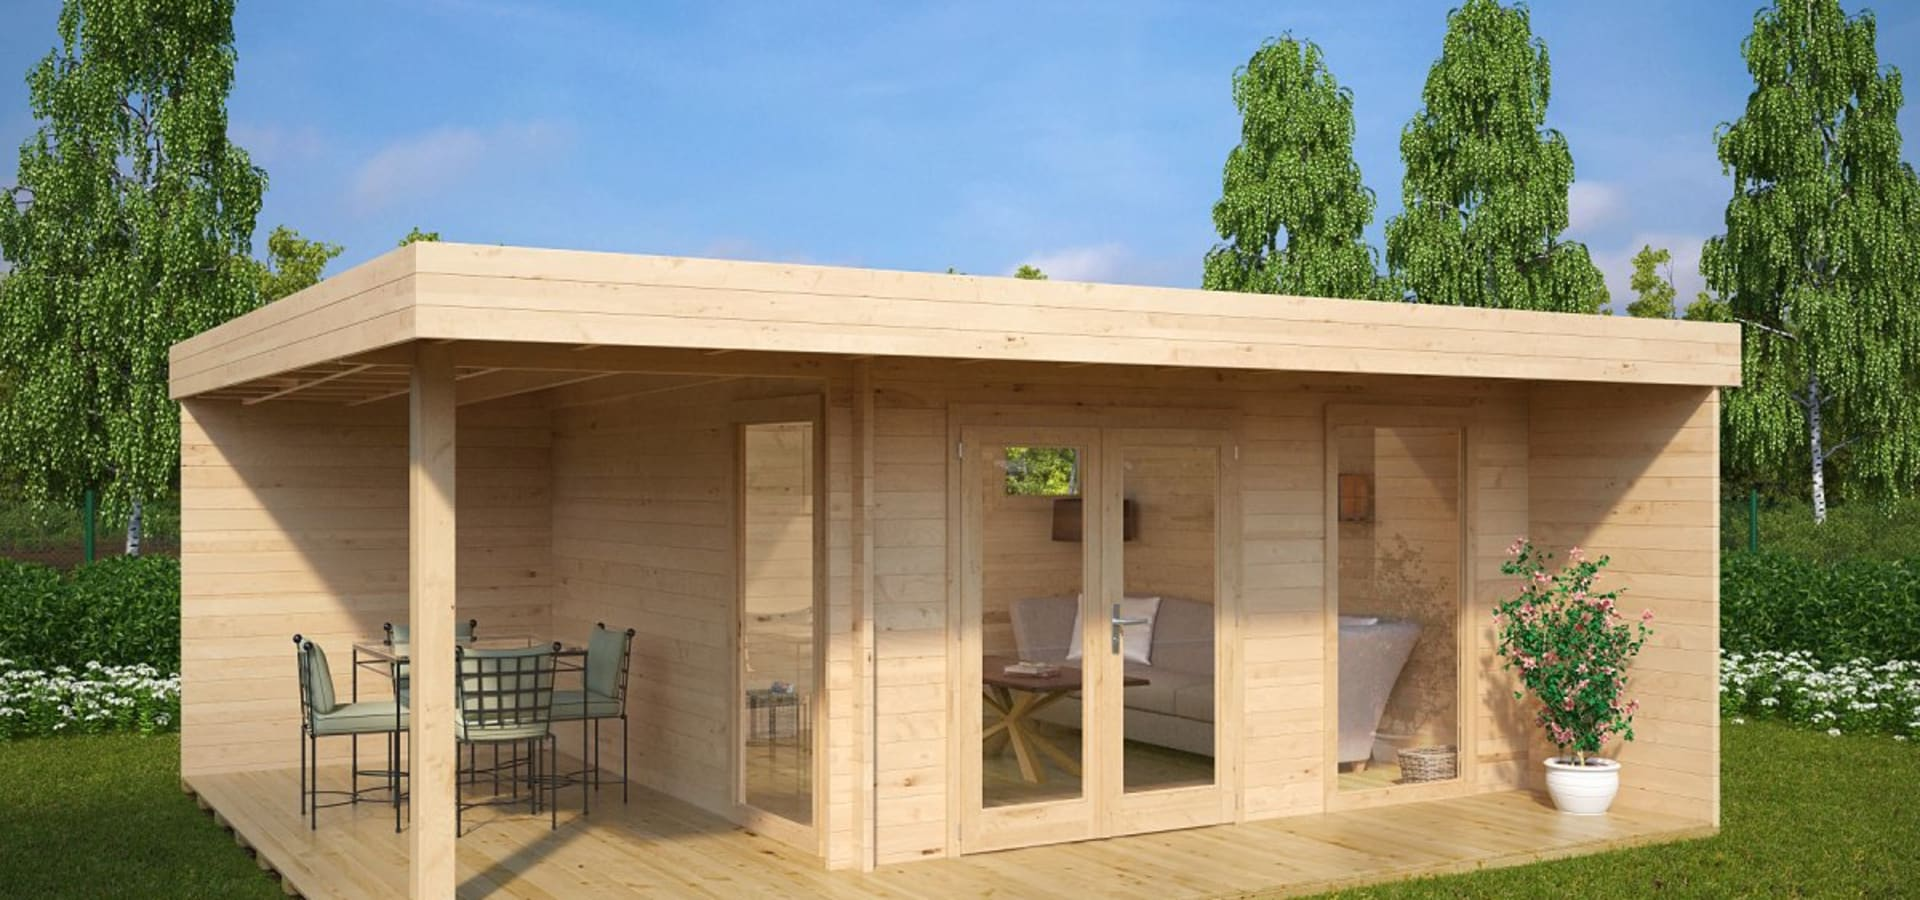 Summerhouse24